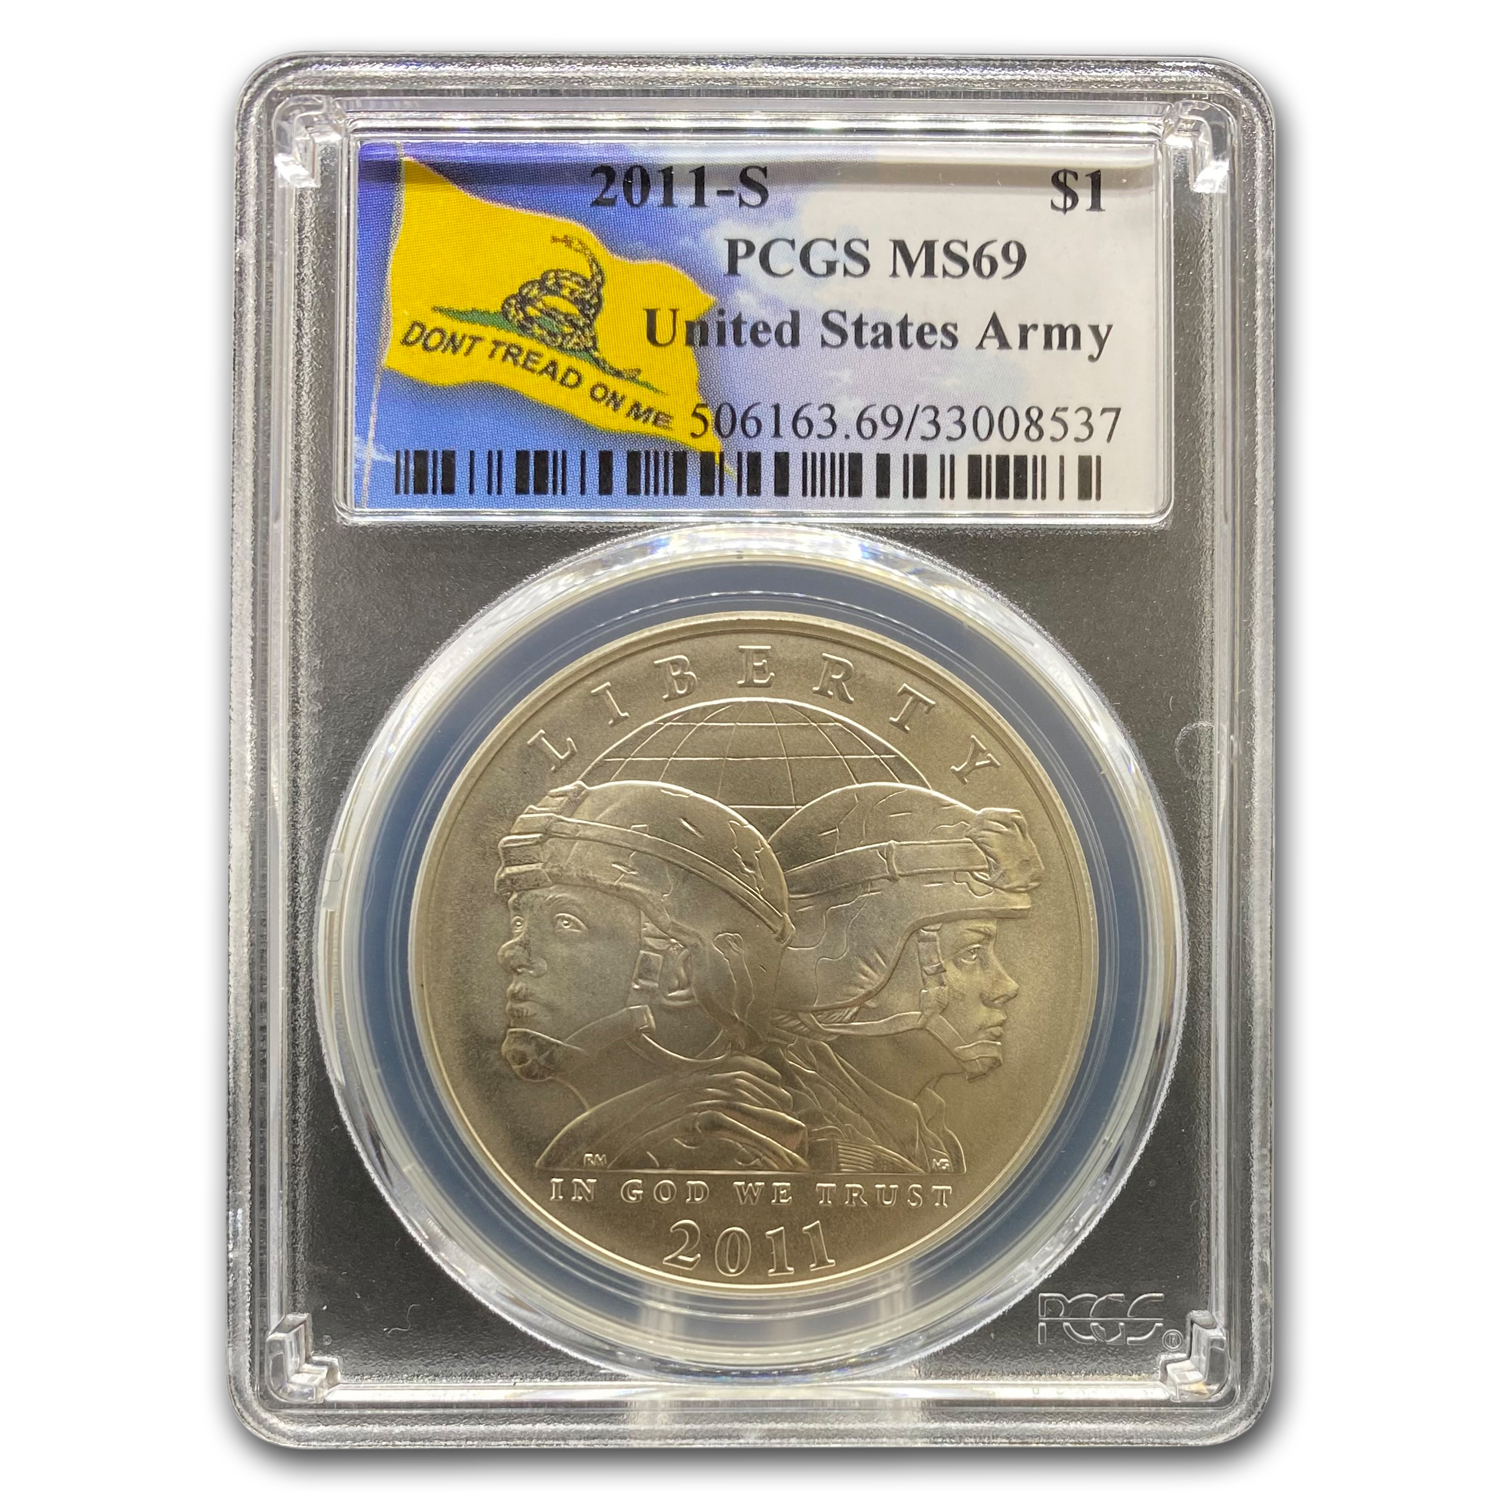 2011-S United States Army $1 Silver Commem MS-69 PCGS